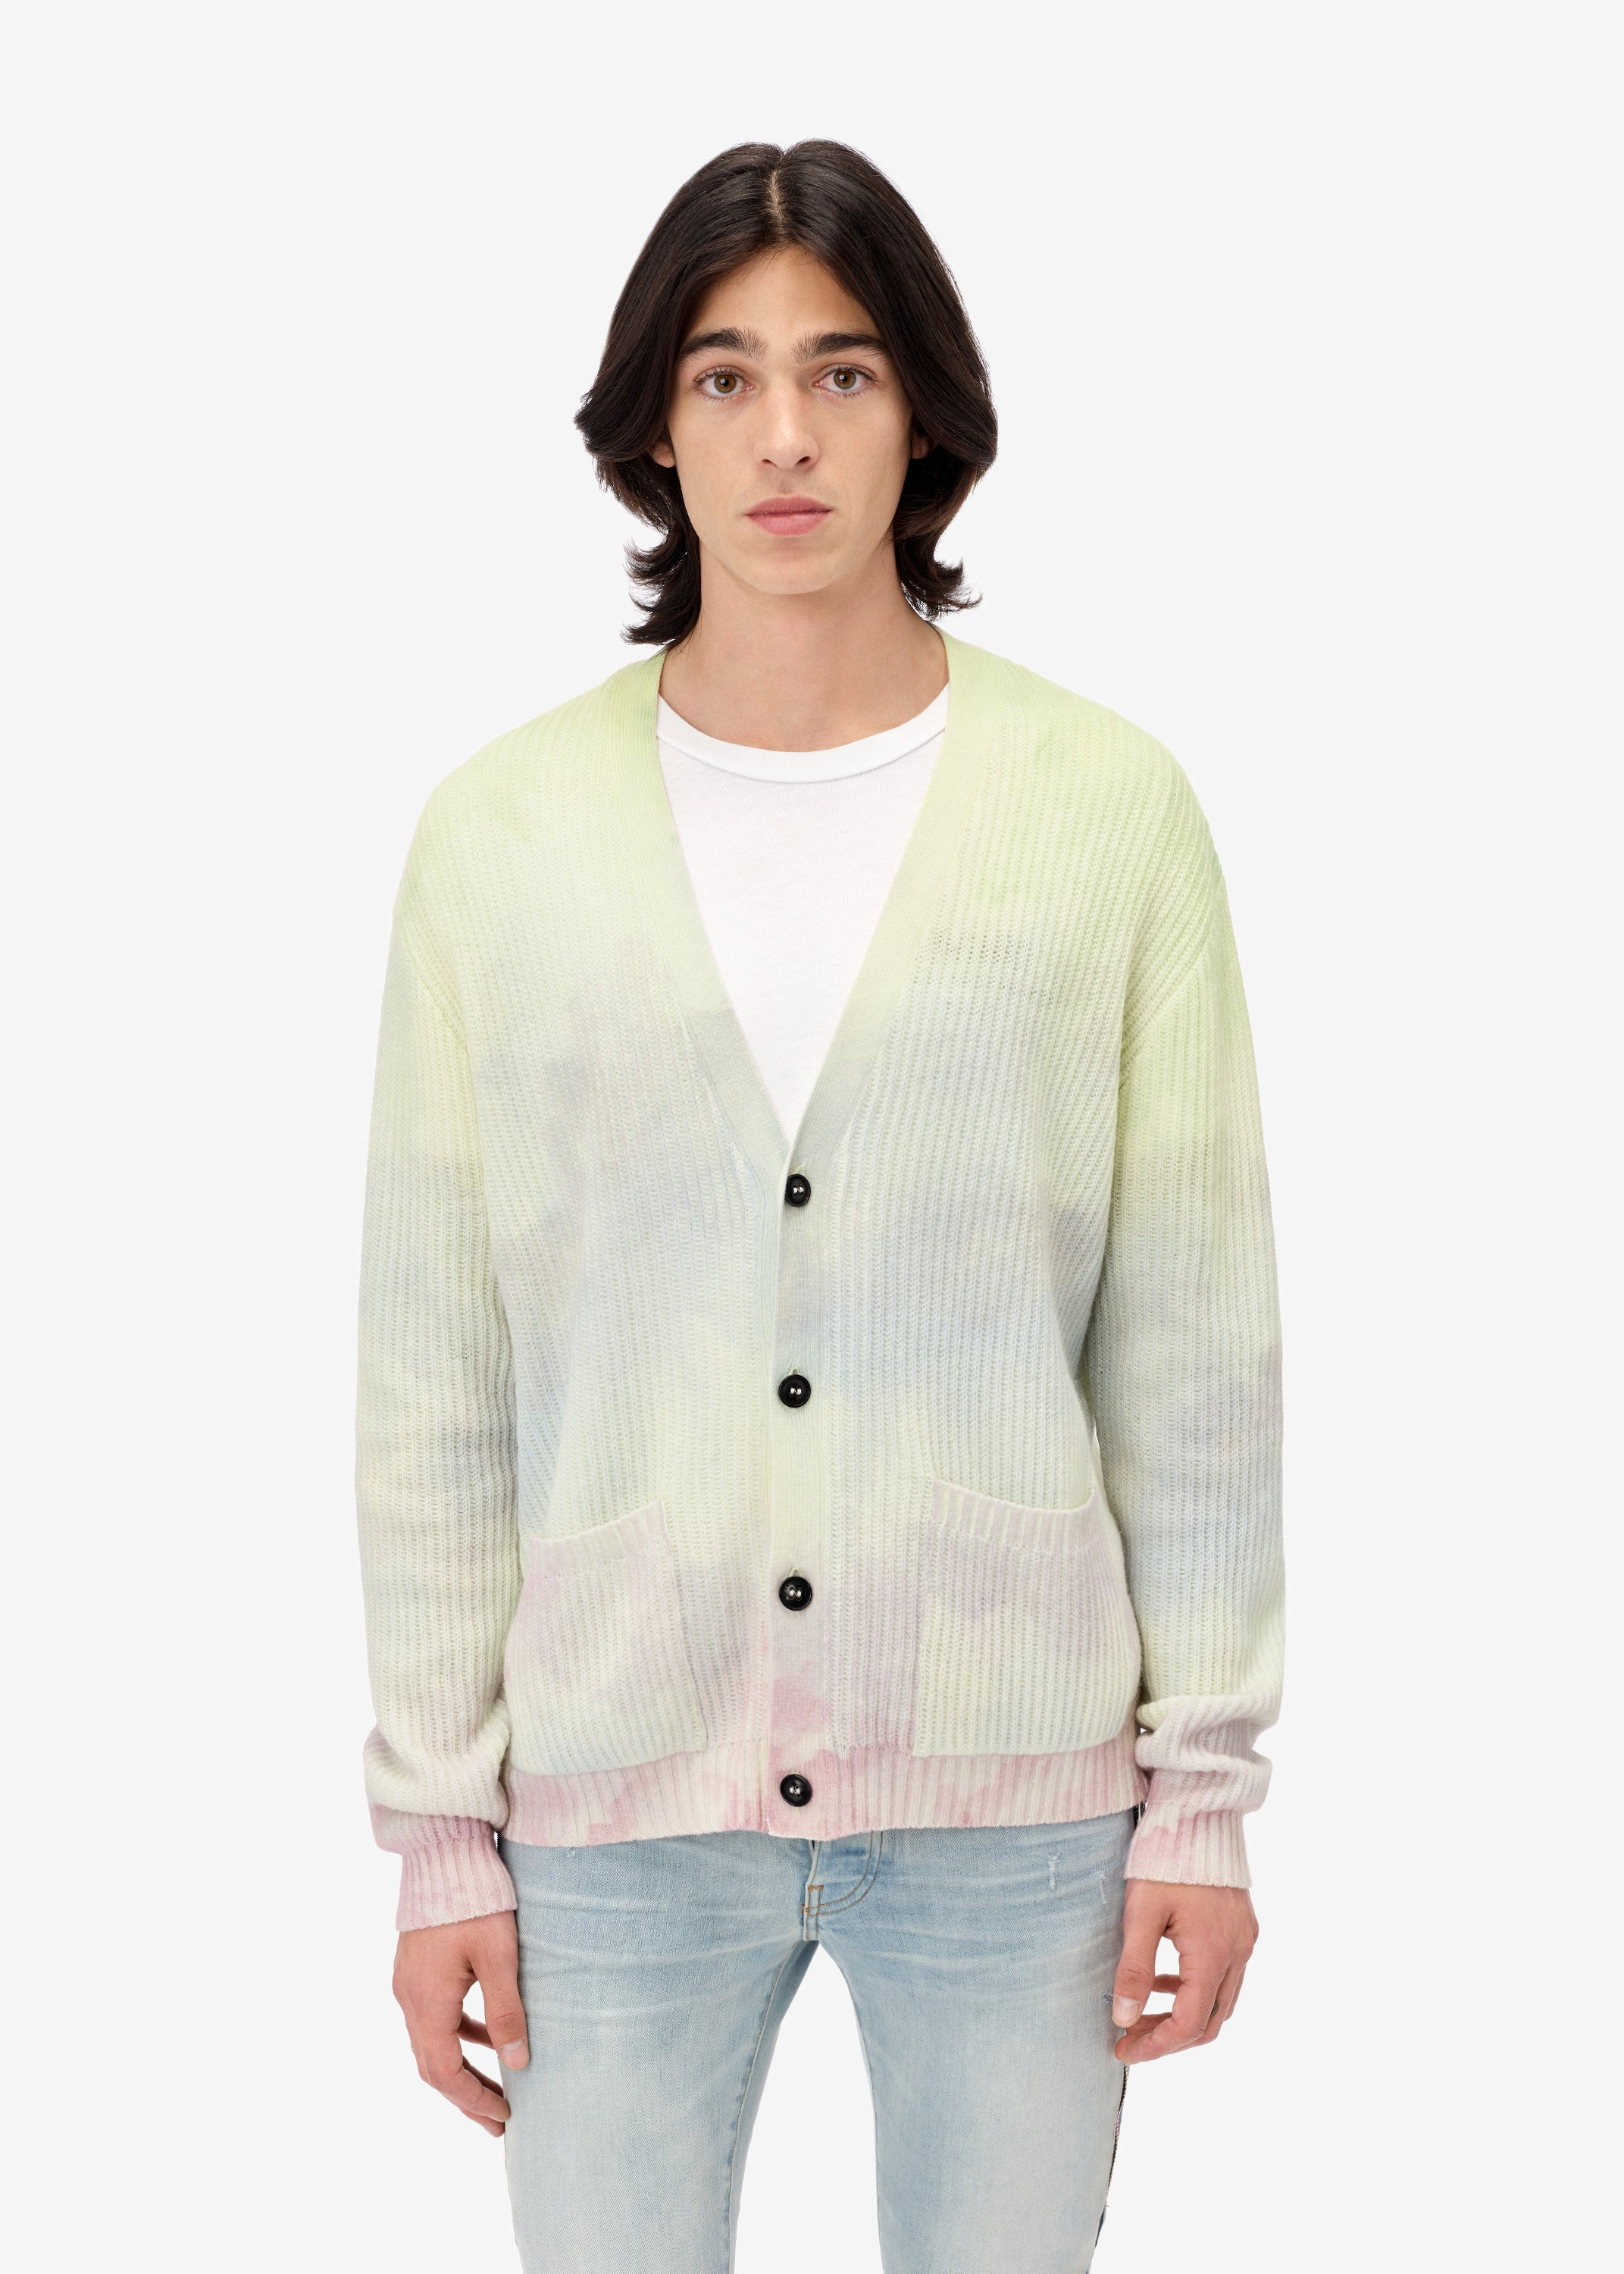 watercolor-print-cardigan-multi-color-image-1